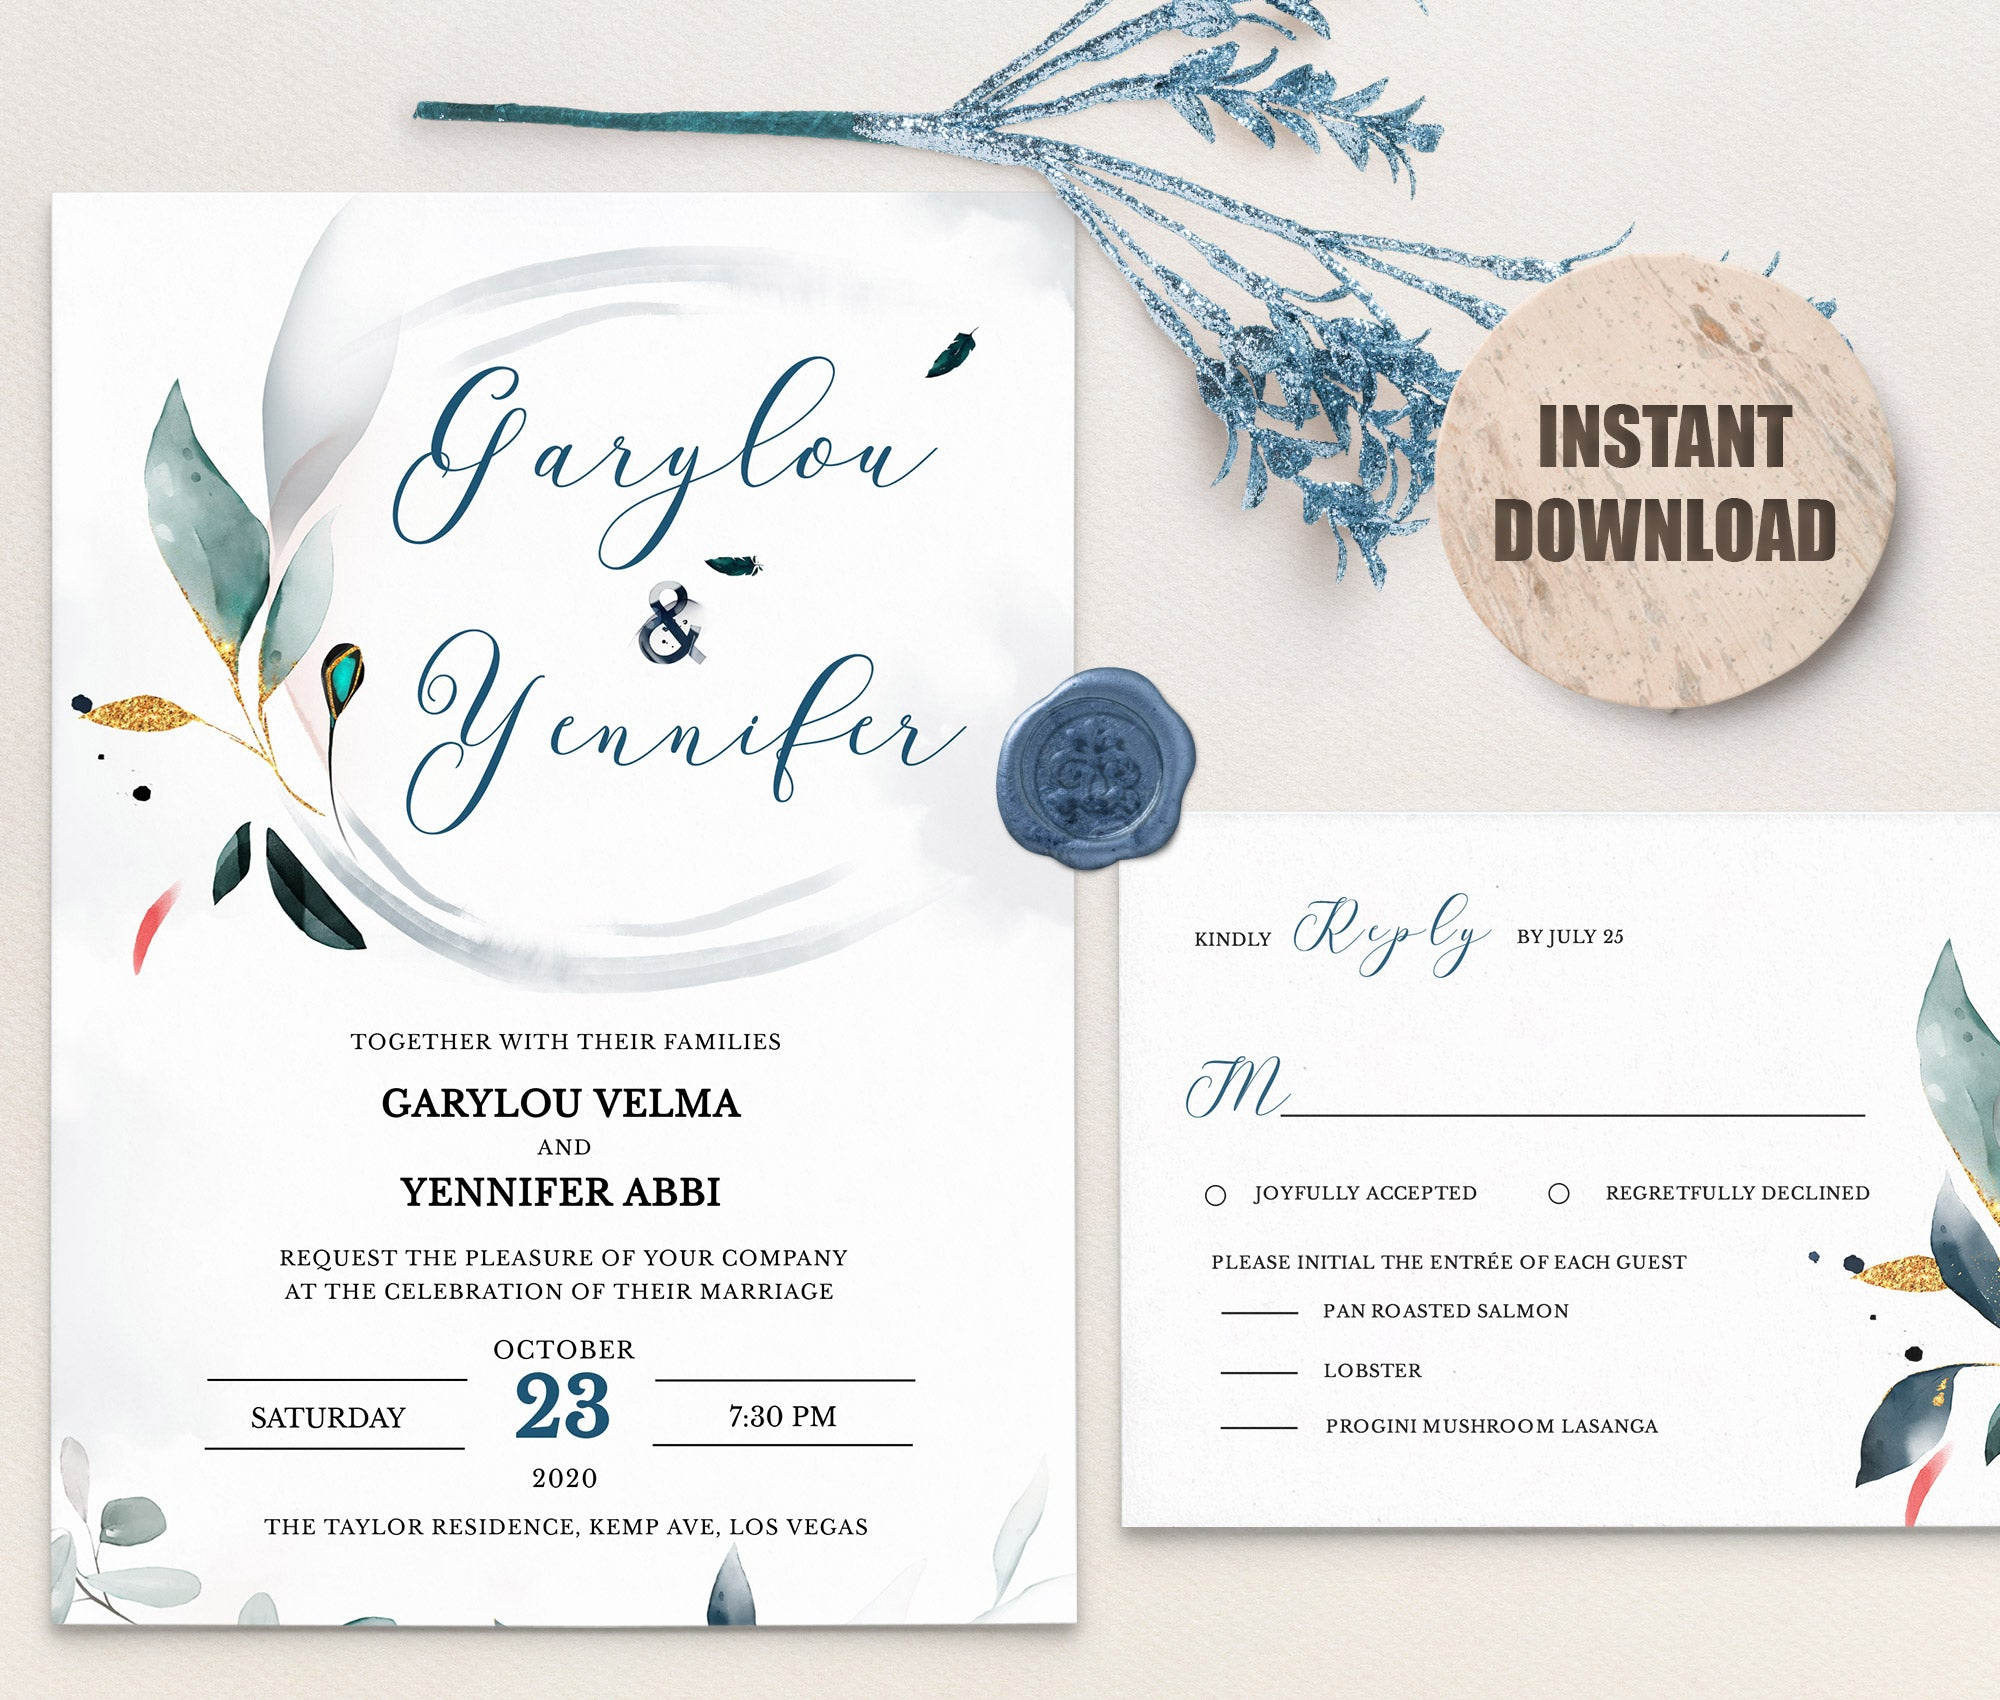 SPMR - Wedding Invitation and RSVP set 5 - Greenlanderdesign